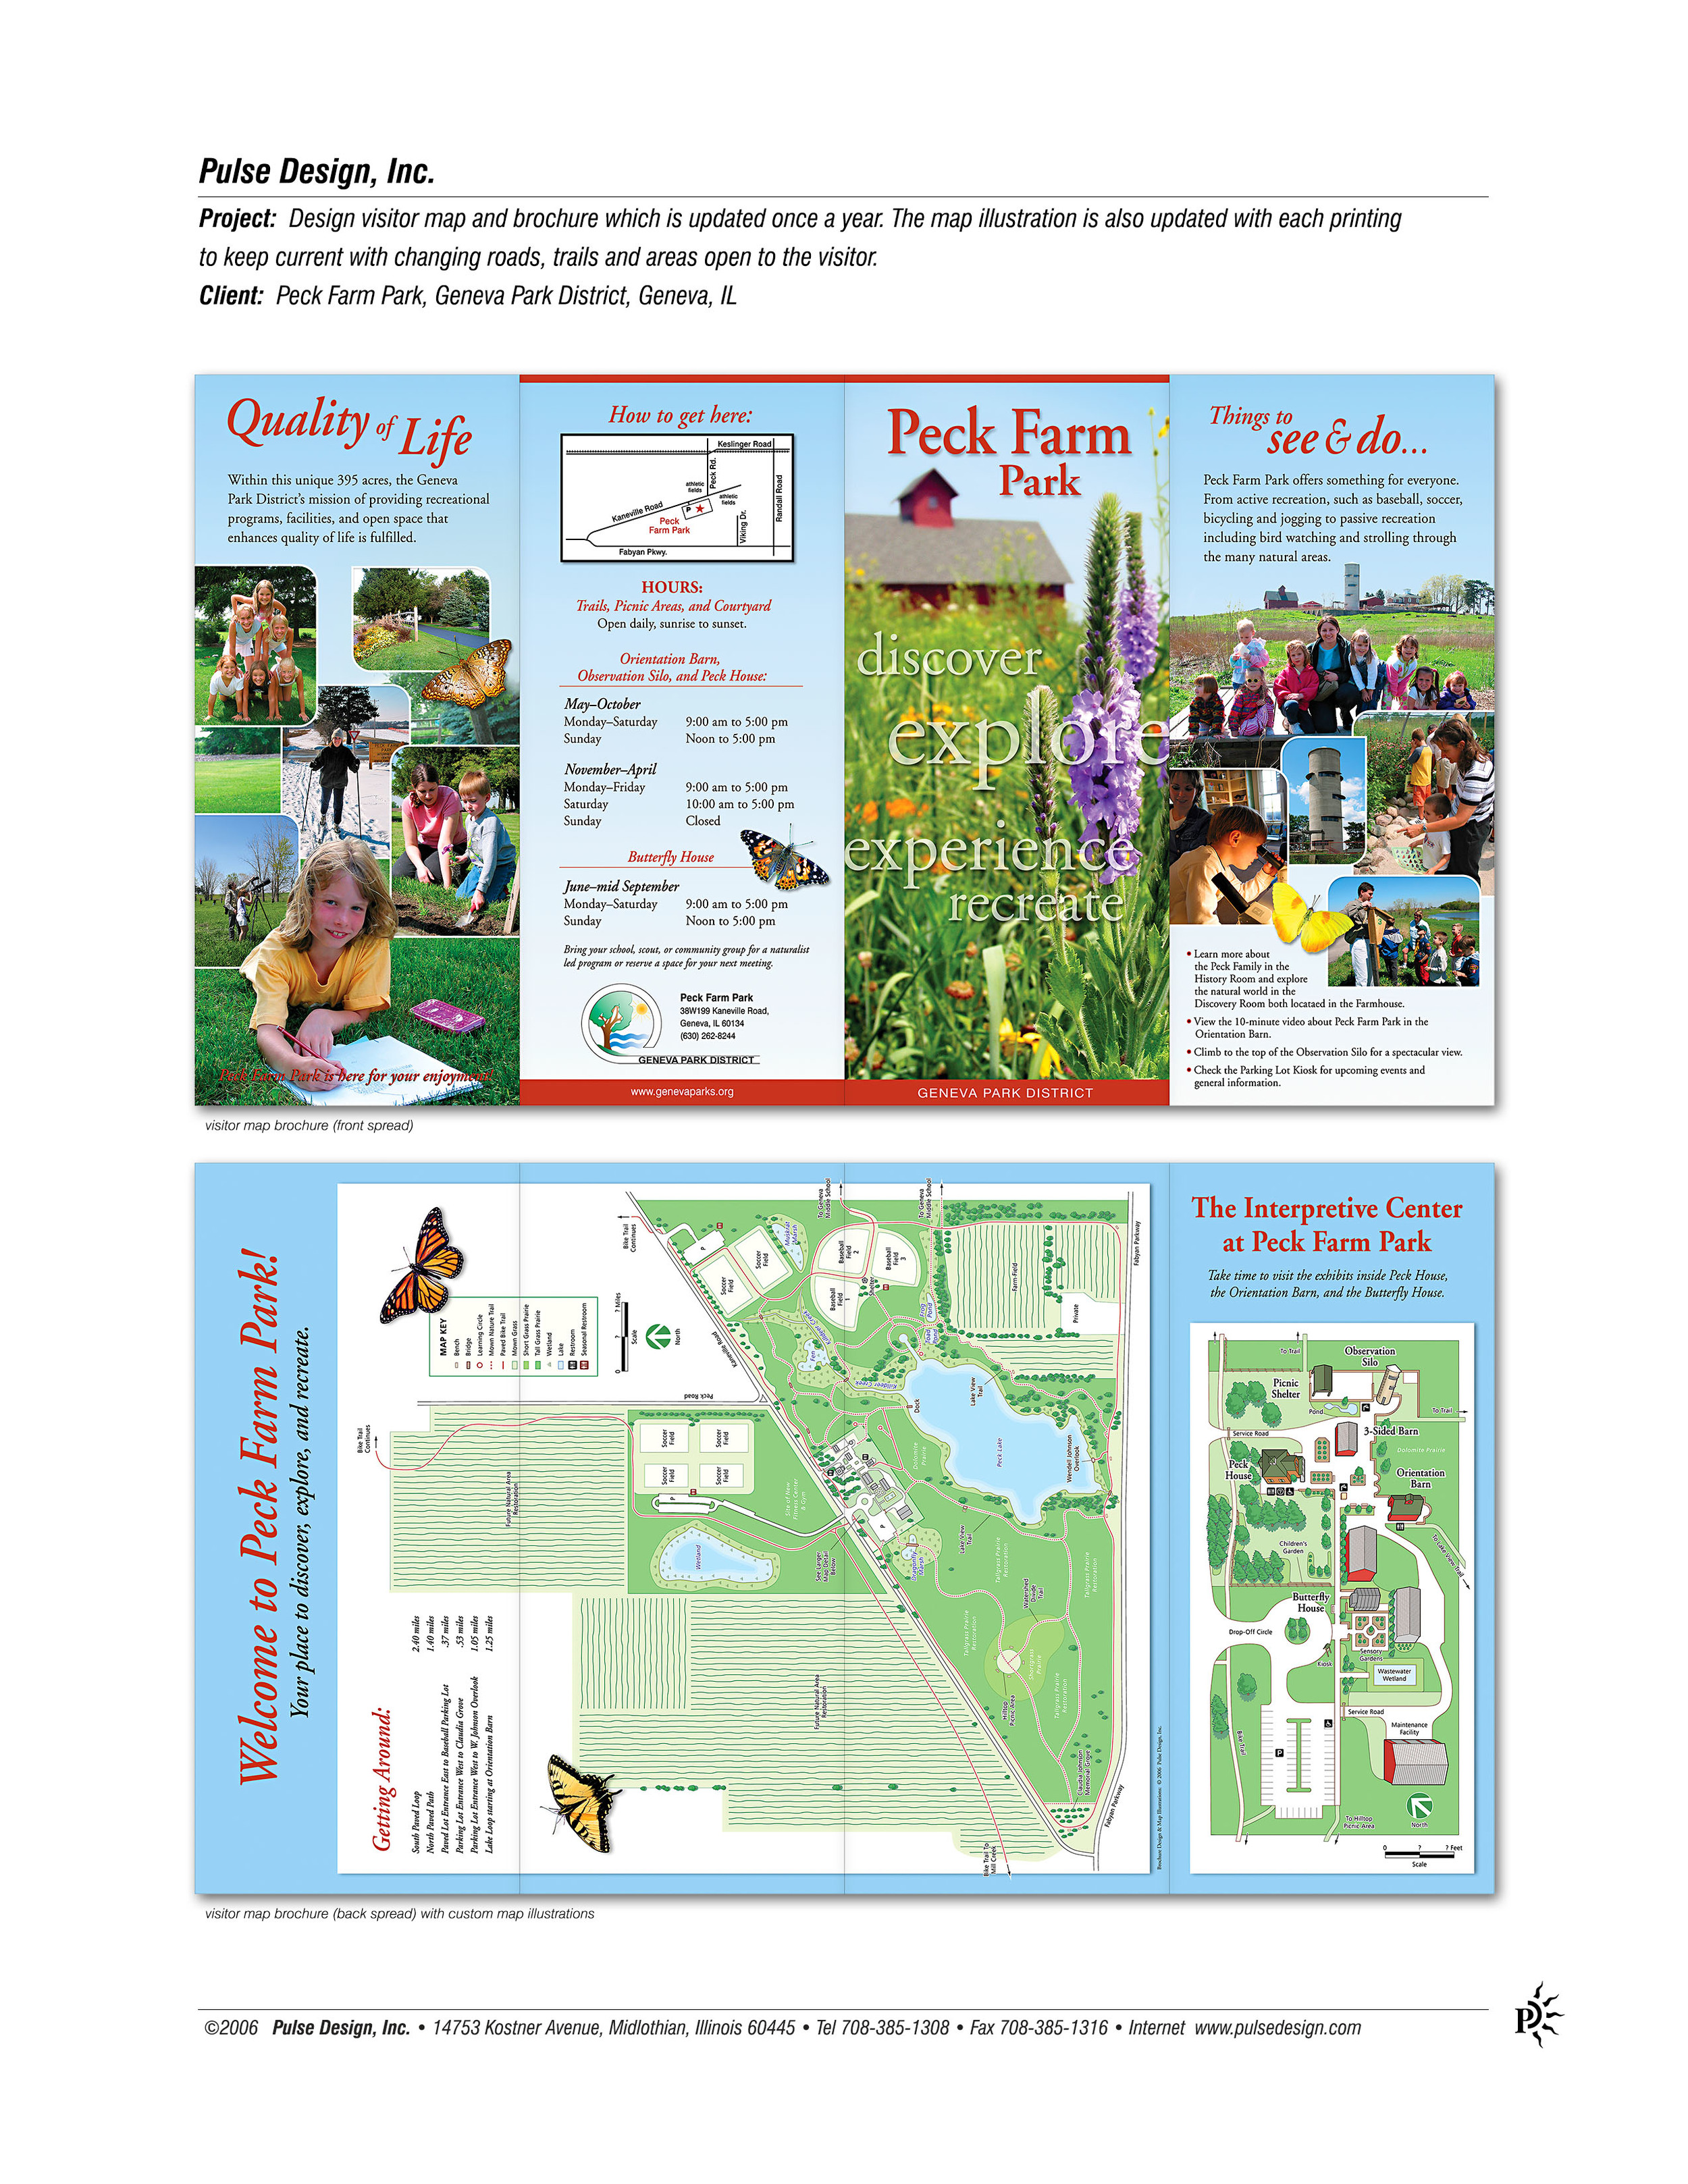 Peck-Farm-Brochure-Map-2-Pulse-Design-Inc.jpg